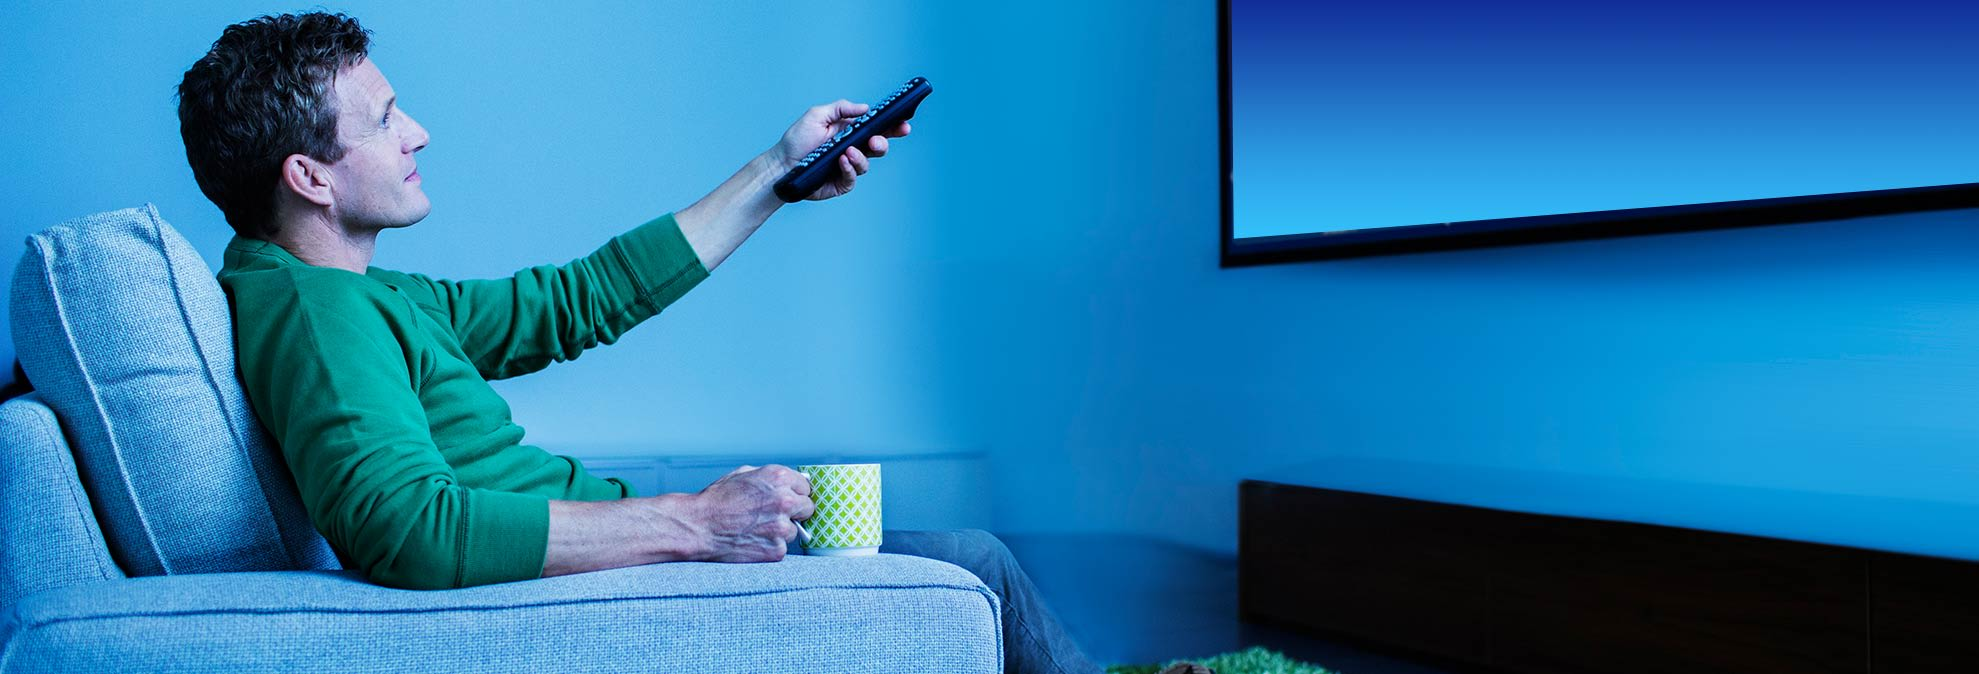 How To Turn Off Smart Tv Snooping Features Consumer Reports